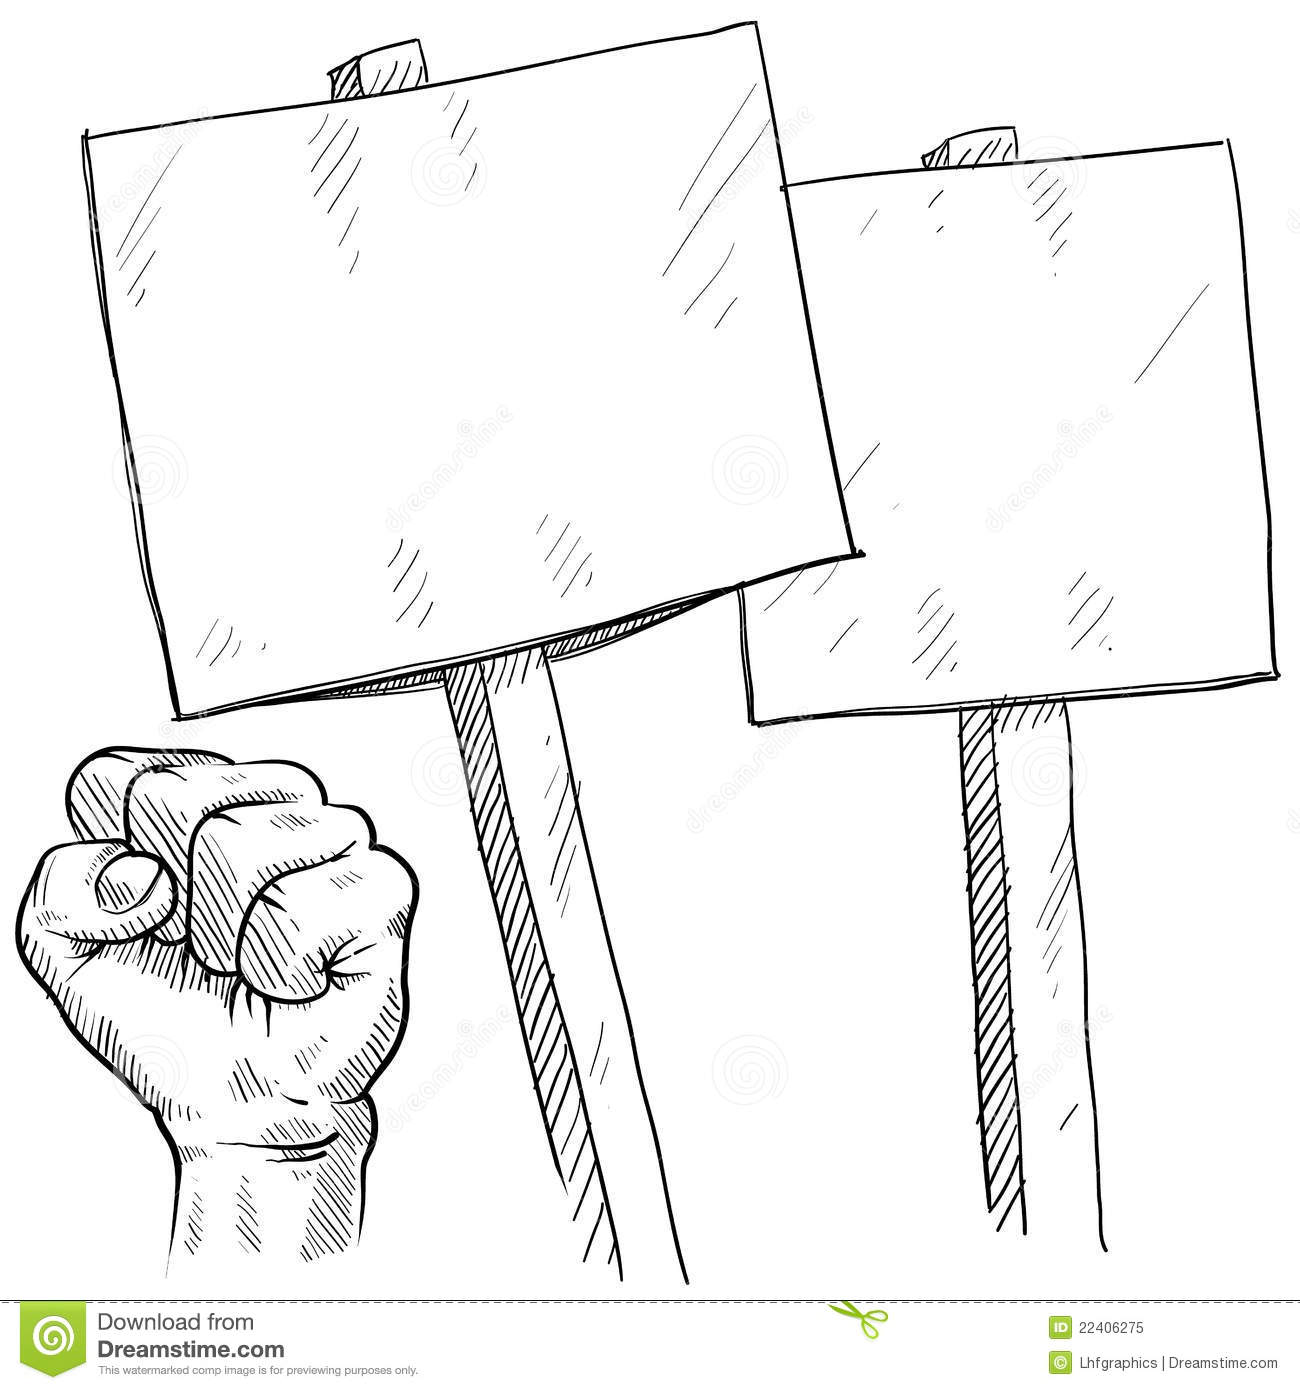 Protest sign clipart » Clipart Station.